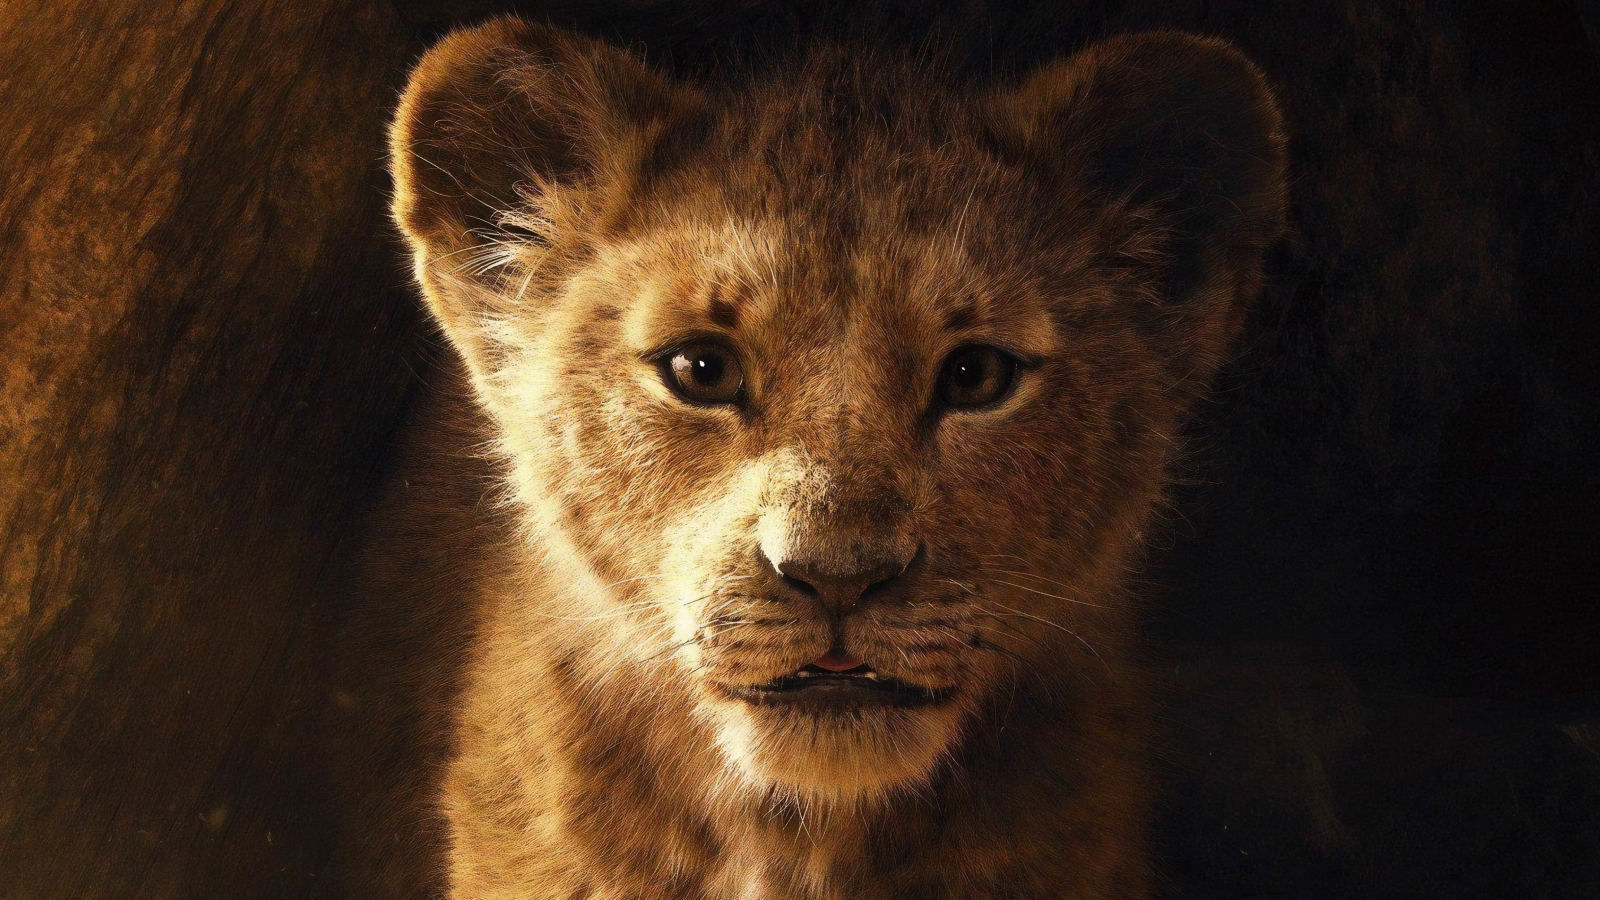 download the lion king 2019 movie poster 1600x1200